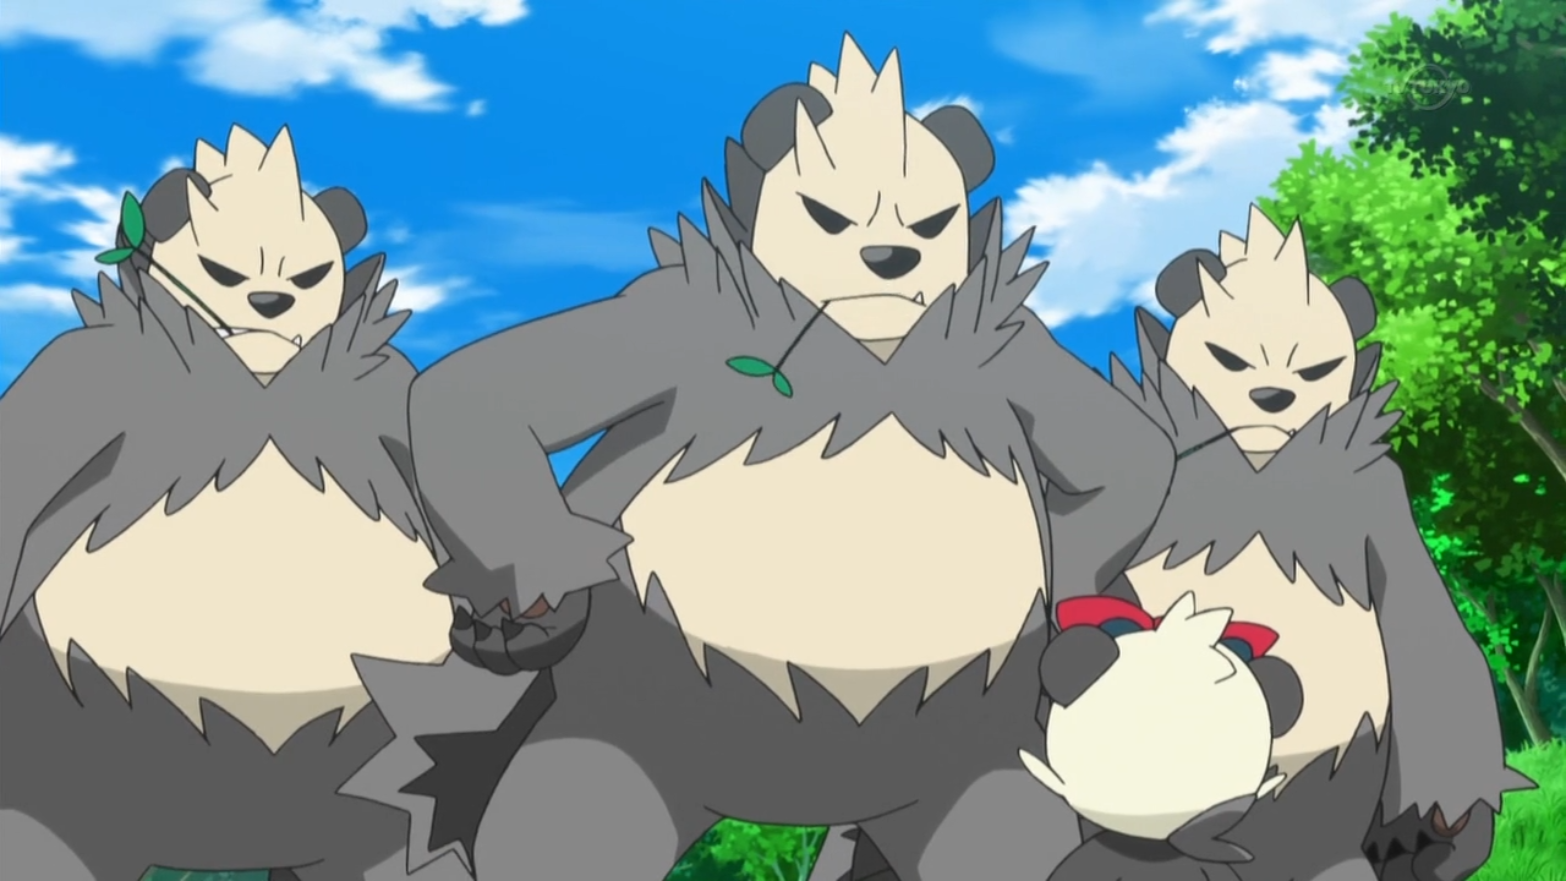 Pangoro Xy071 Pok 233 Mon Wiki Fandom Powered By Wikia